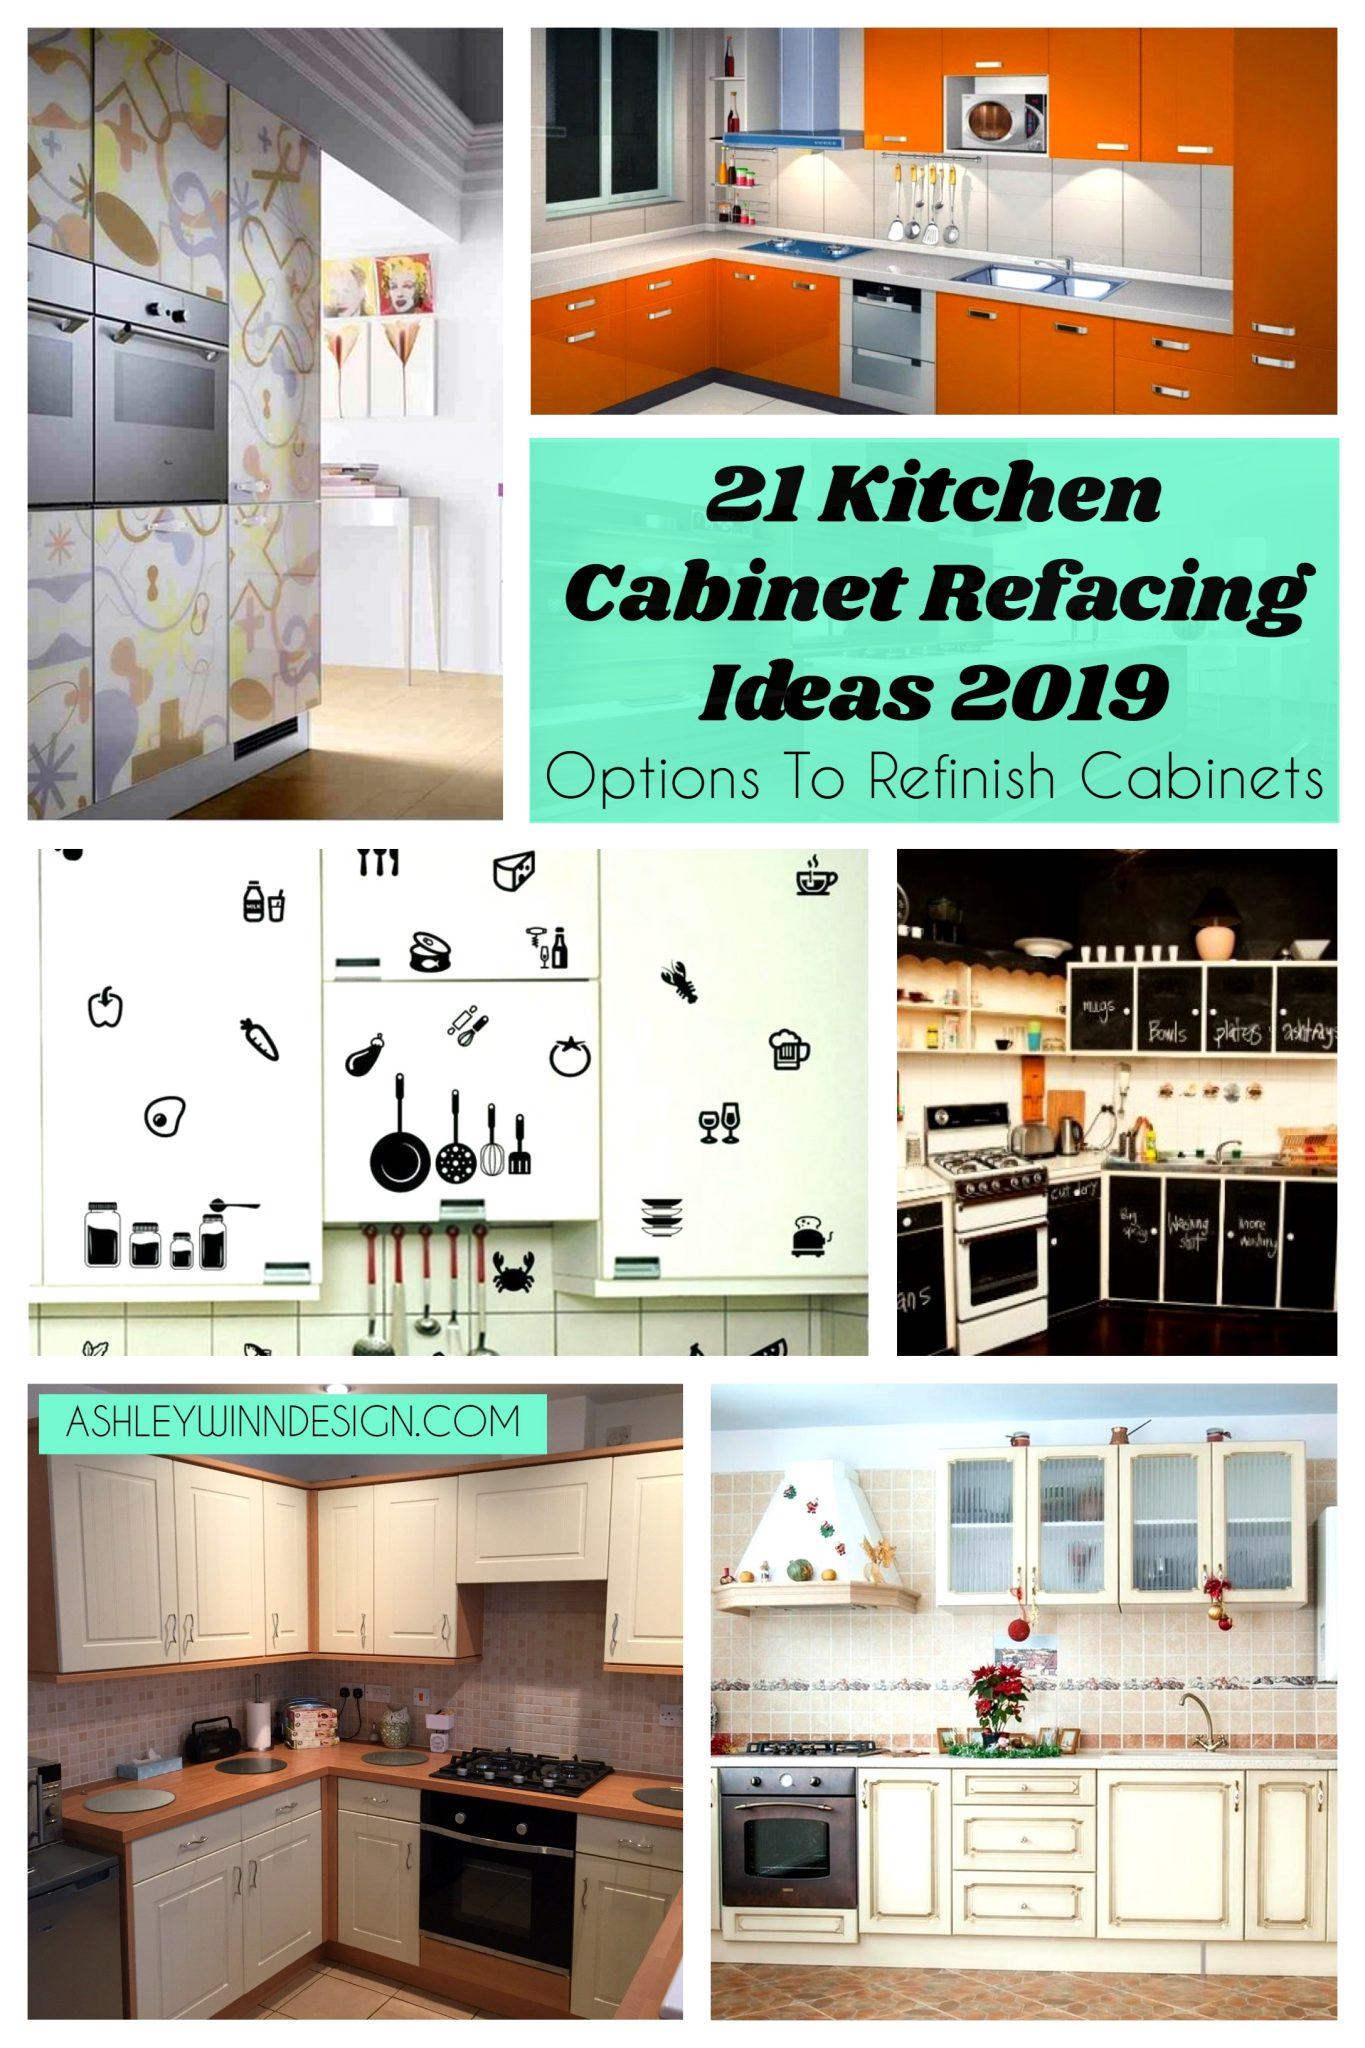 275 & 21 Kitchen Cabinet Refacing Ideas 2019 (Options To Refinish ...